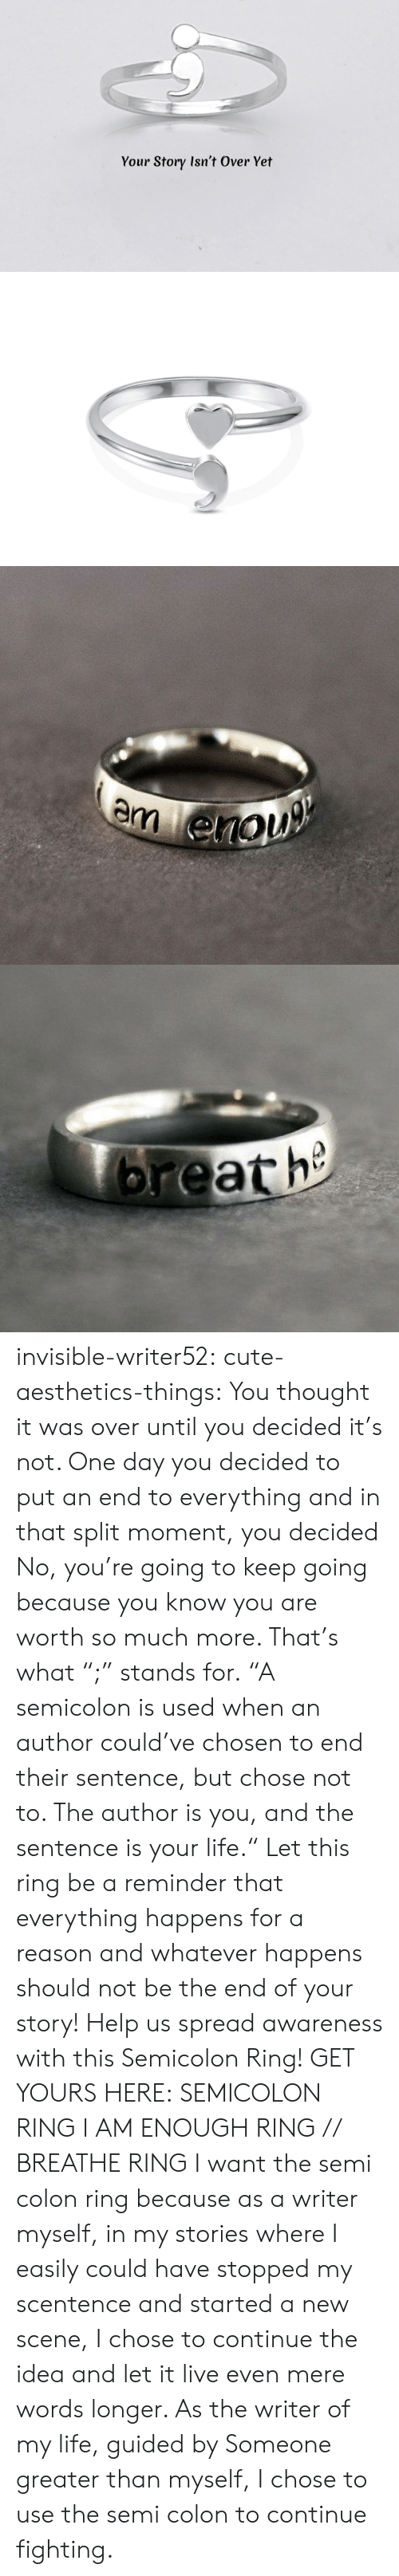 """Cute, Life, and Tumblr: Your Story Isn't Over Yet   m enou   breath invisible-writer52:  cute-aesthetics-things: You thought it was over until you decided it's not. One day you decided to put an end to everything and in that split moment, you decided No, you're going to keep going because you know you are worth so much more. That's what """";"""" stands for. """"A semicolon is used when an author could've chosen to end their sentence, but chose not to. The author is you, and the sentence is your life."""" Let this ring be a reminder that everything happens for a reason and whatever happens should not be the end of your story! Help us spread awareness with this Semicolon Ring! GET YOURS HERE:  SEMICOLON RING  I AM ENOUGH RING // BREATHE RING   I want the semi colon ring because as a writer myself, in my stories where I easily could have stopped my scentence and started a new scene, I chose to continue the idea and let it live even mere words longer. As the writer of my life, guided by Someone greater than myself, I chose to use the semi colon to continue fighting."""